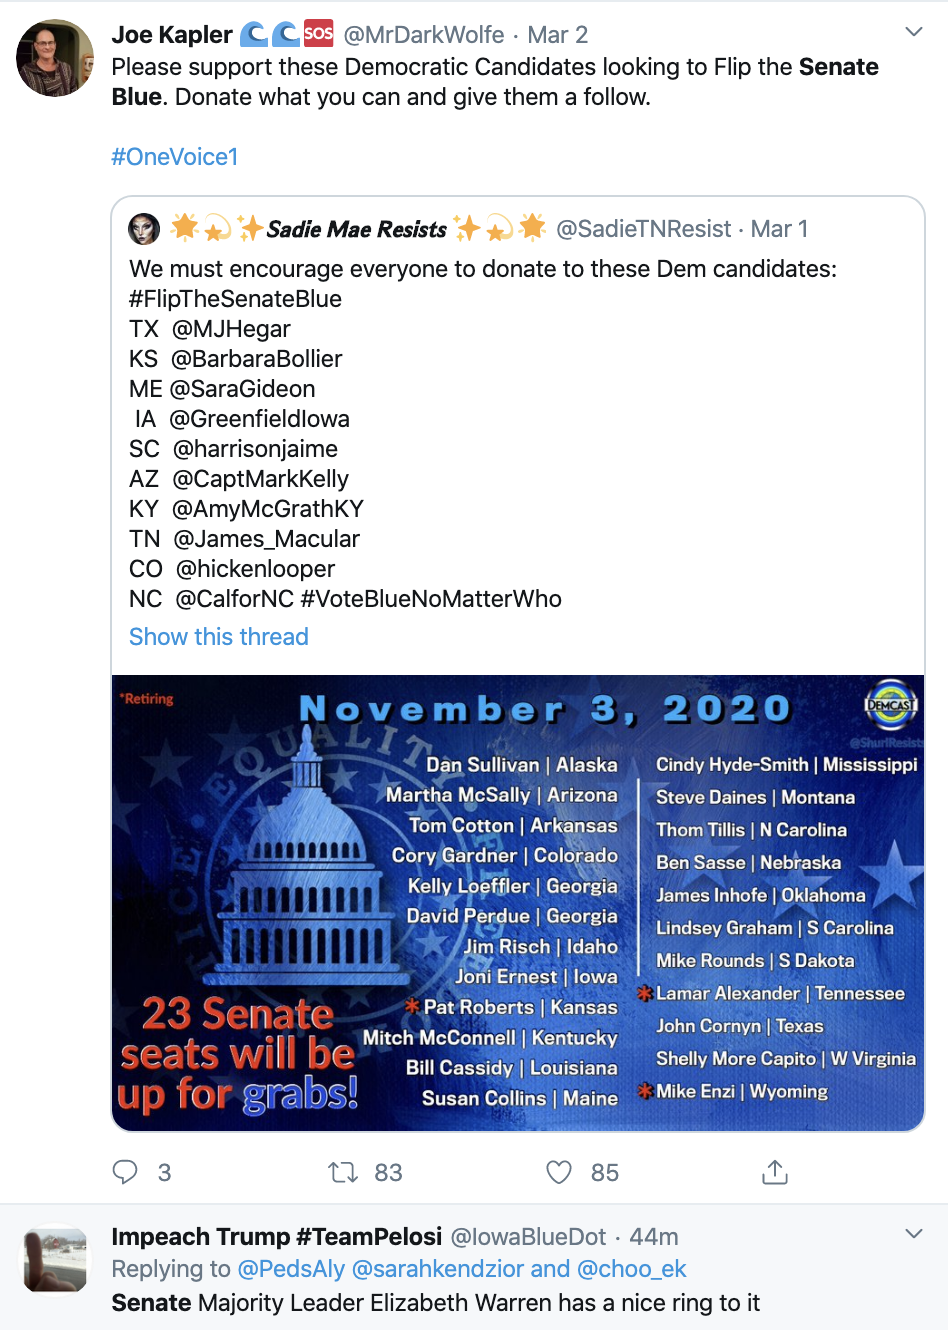 Screen-Shot-2020-03-05-at-12.51.12-PM New PPP Poll Shows Senate Could Flip Blue In 2020 Election 2020 Featured Politics Polls Top Stories